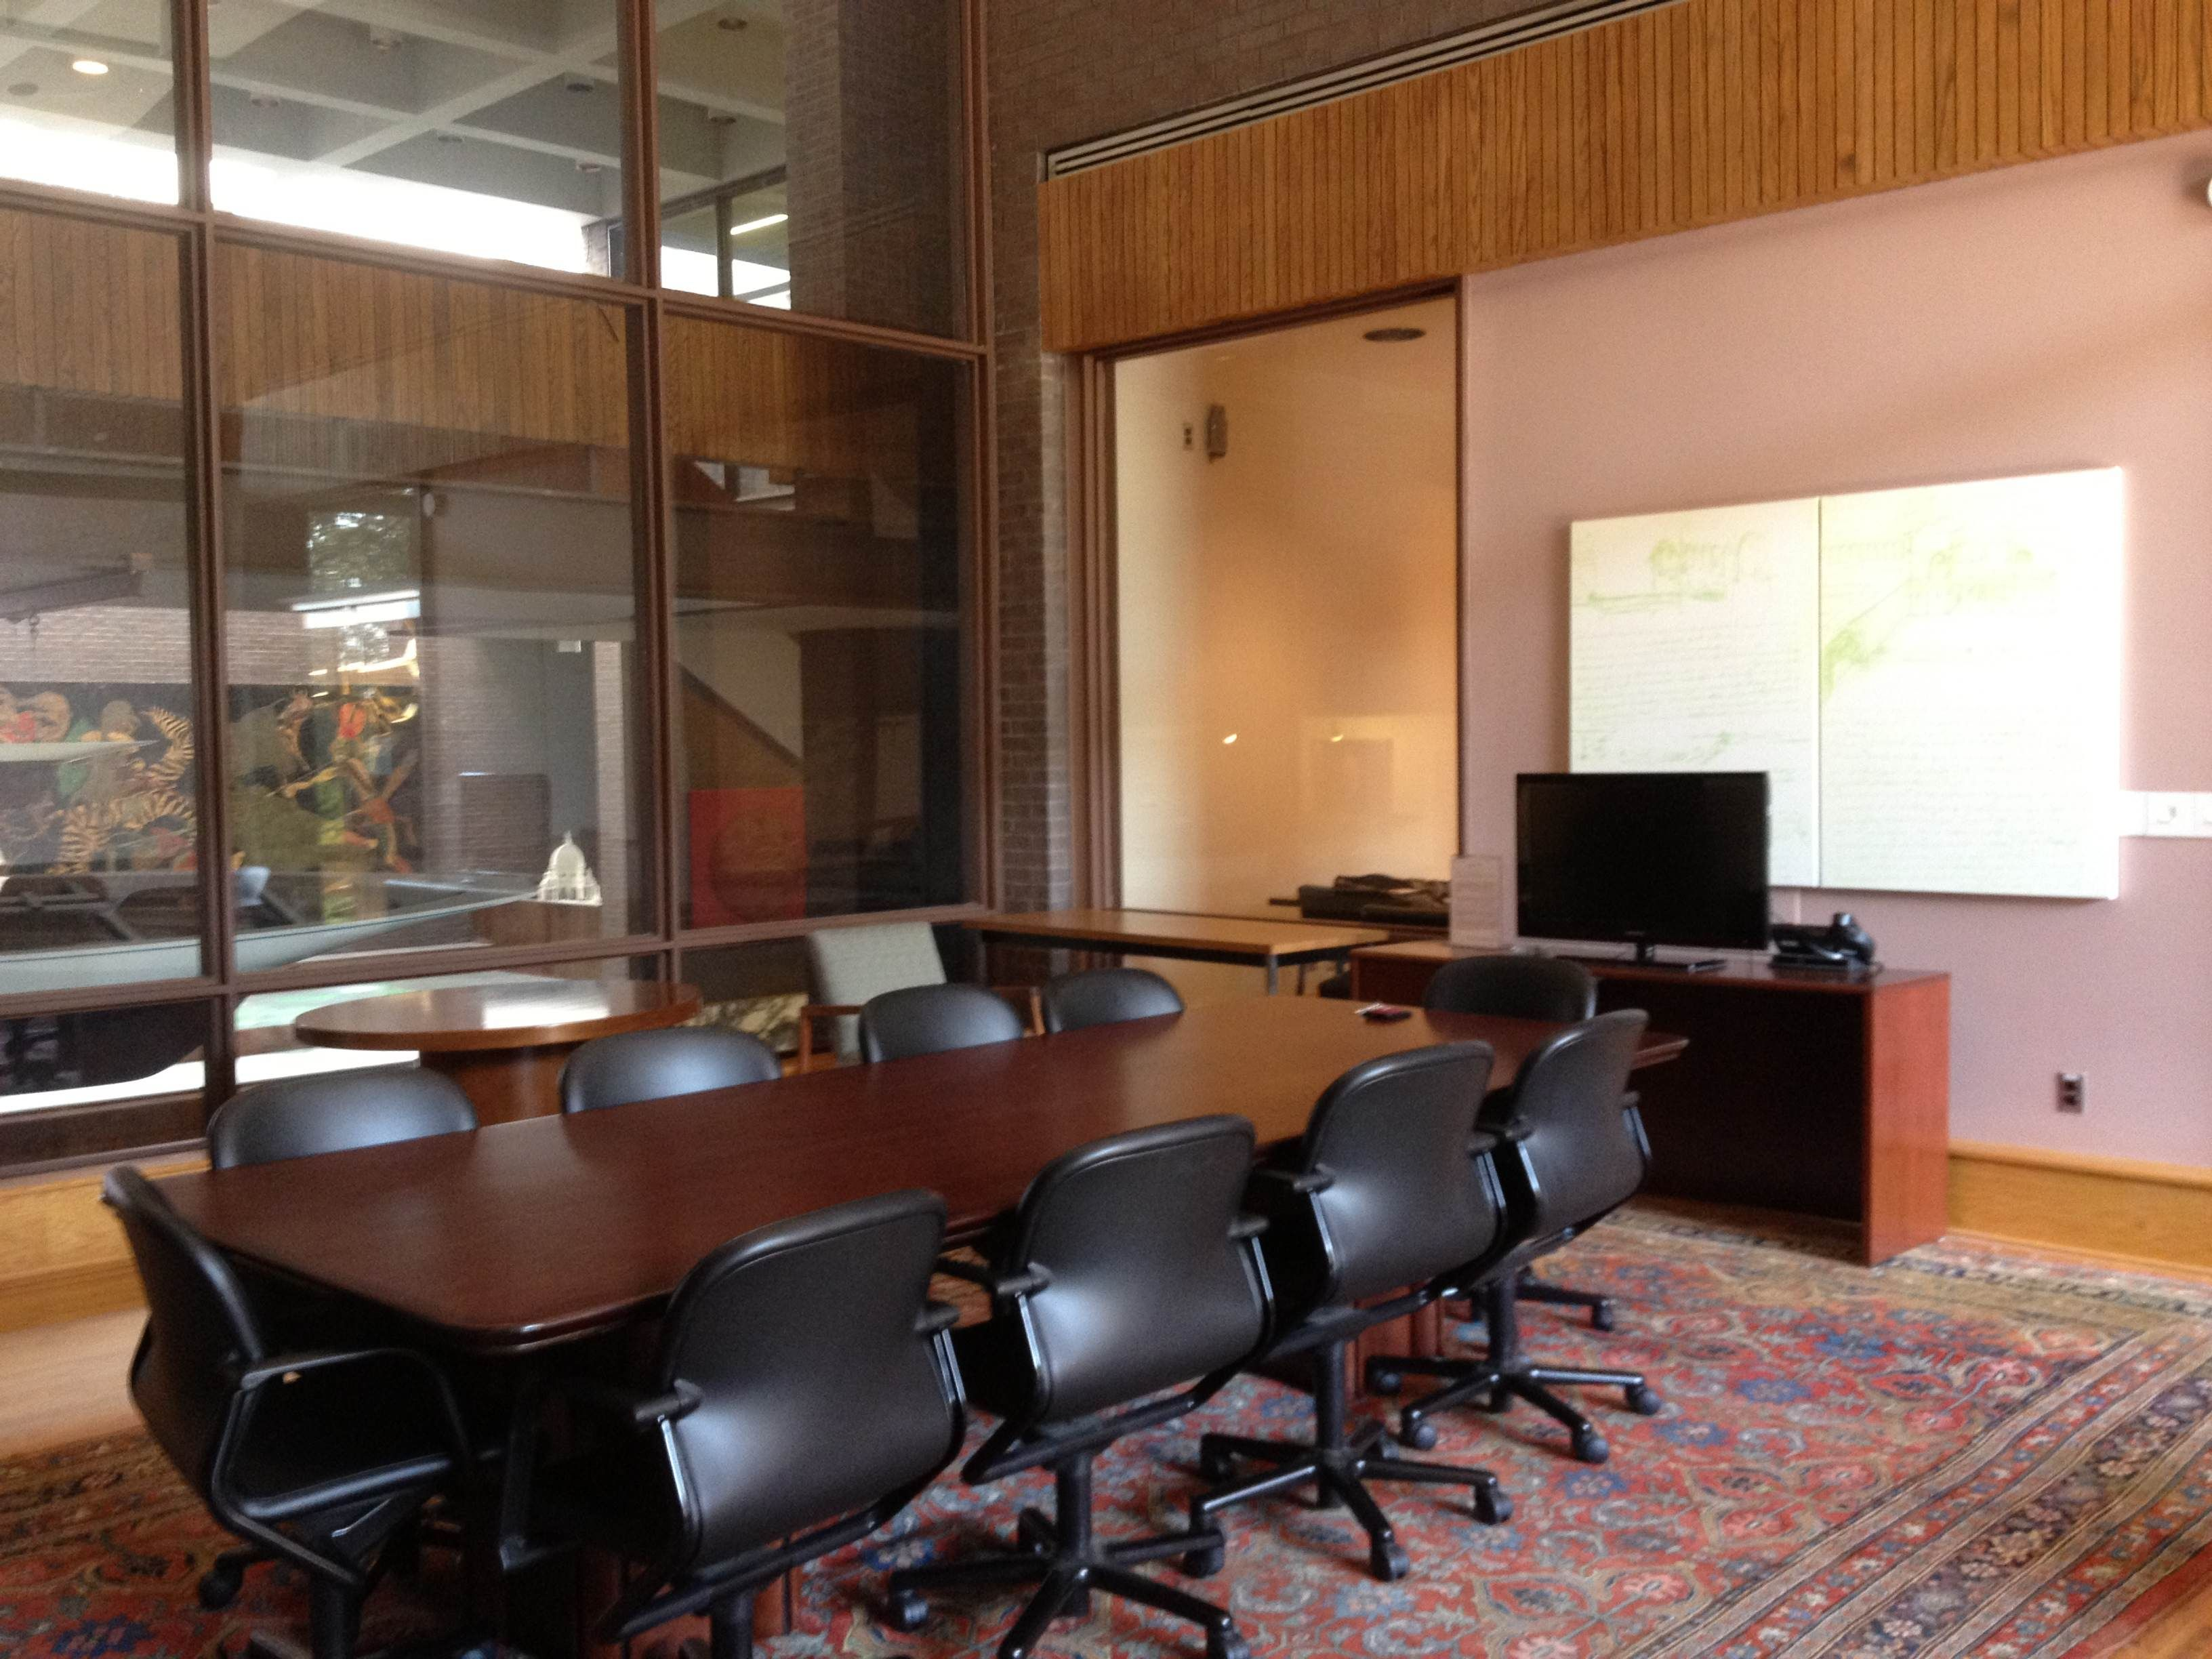 meeting room, stevens institute of technology in new jersey, http